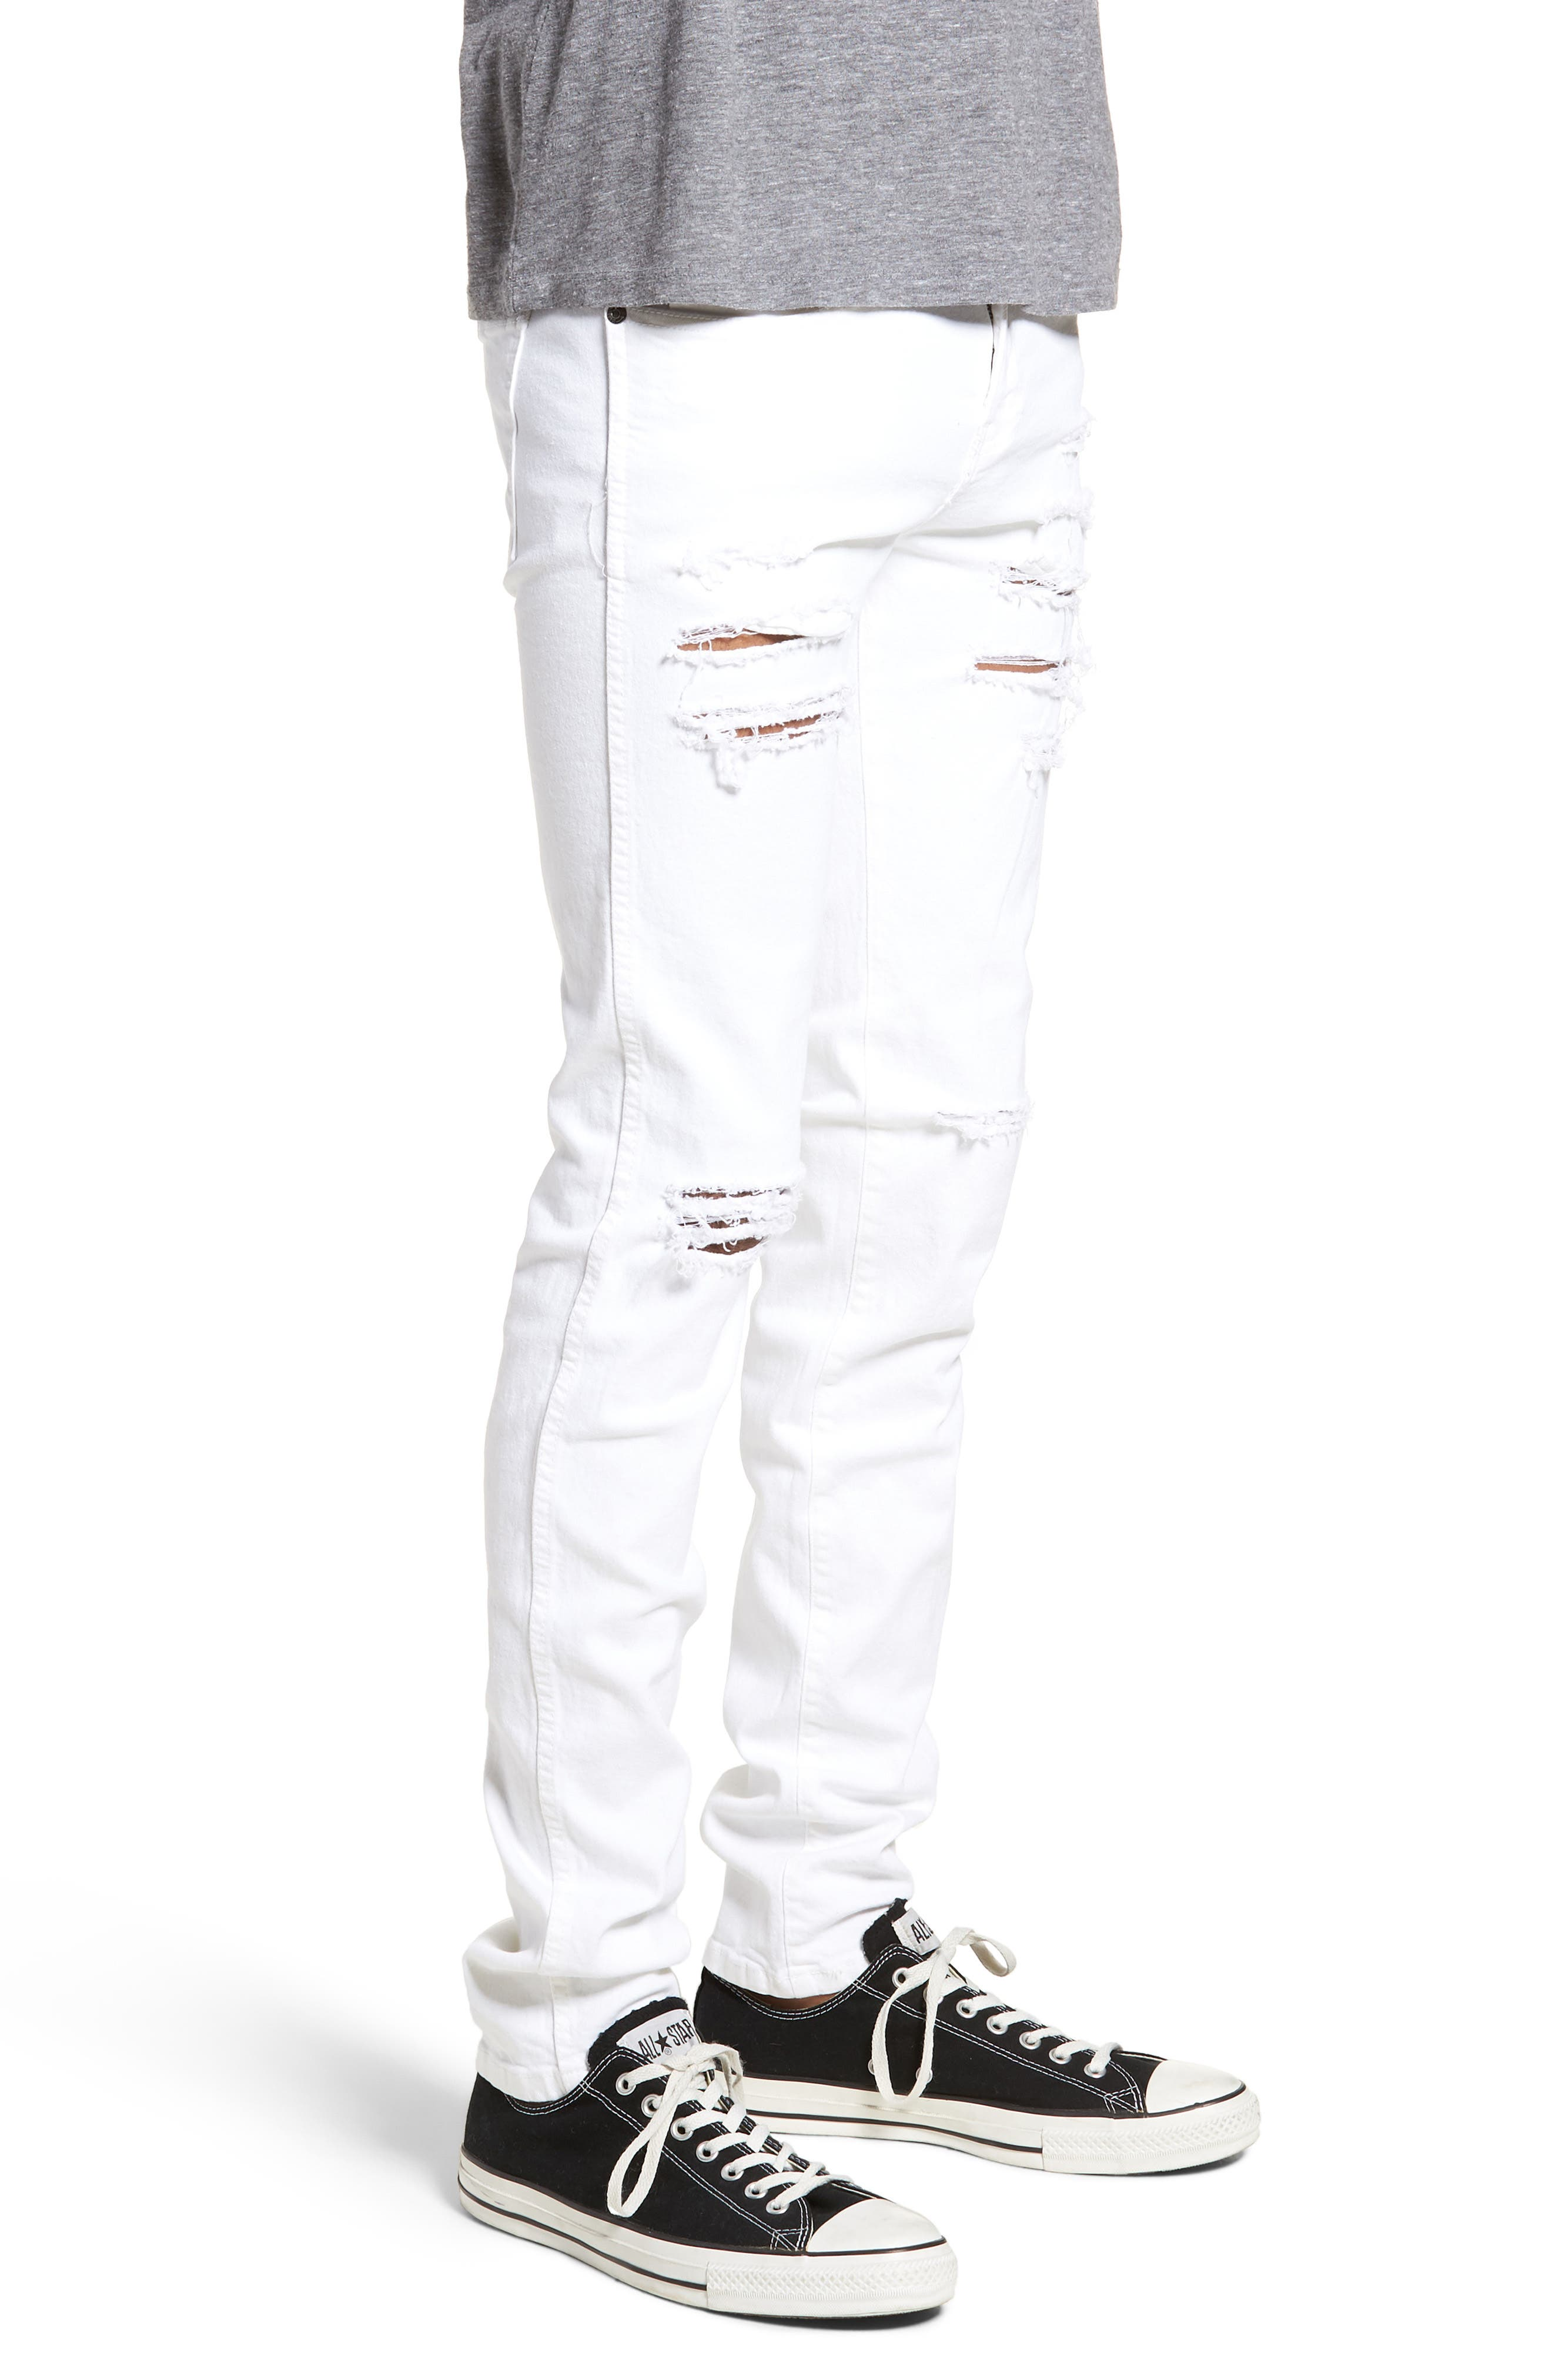 Snap Skinny Fit Jeans,                             Alternate thumbnail 3, color,                             WHITE RIPPED